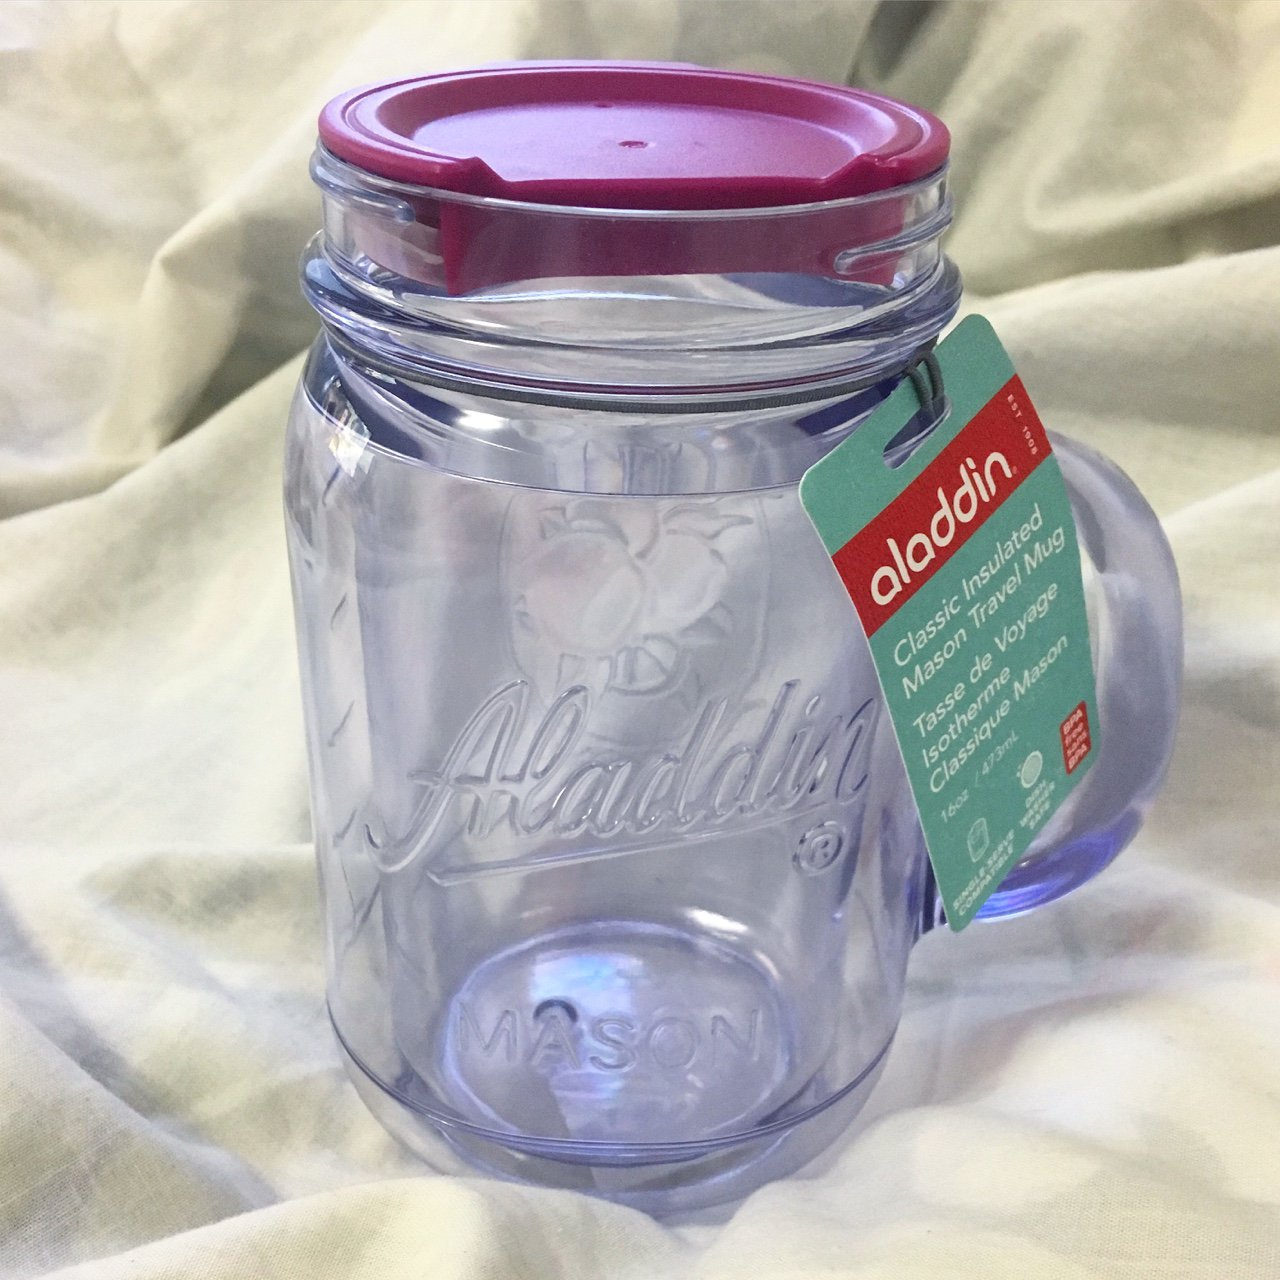 Brand New Insulated Travel Mason Jar Mug Dishwasher Safe Depop